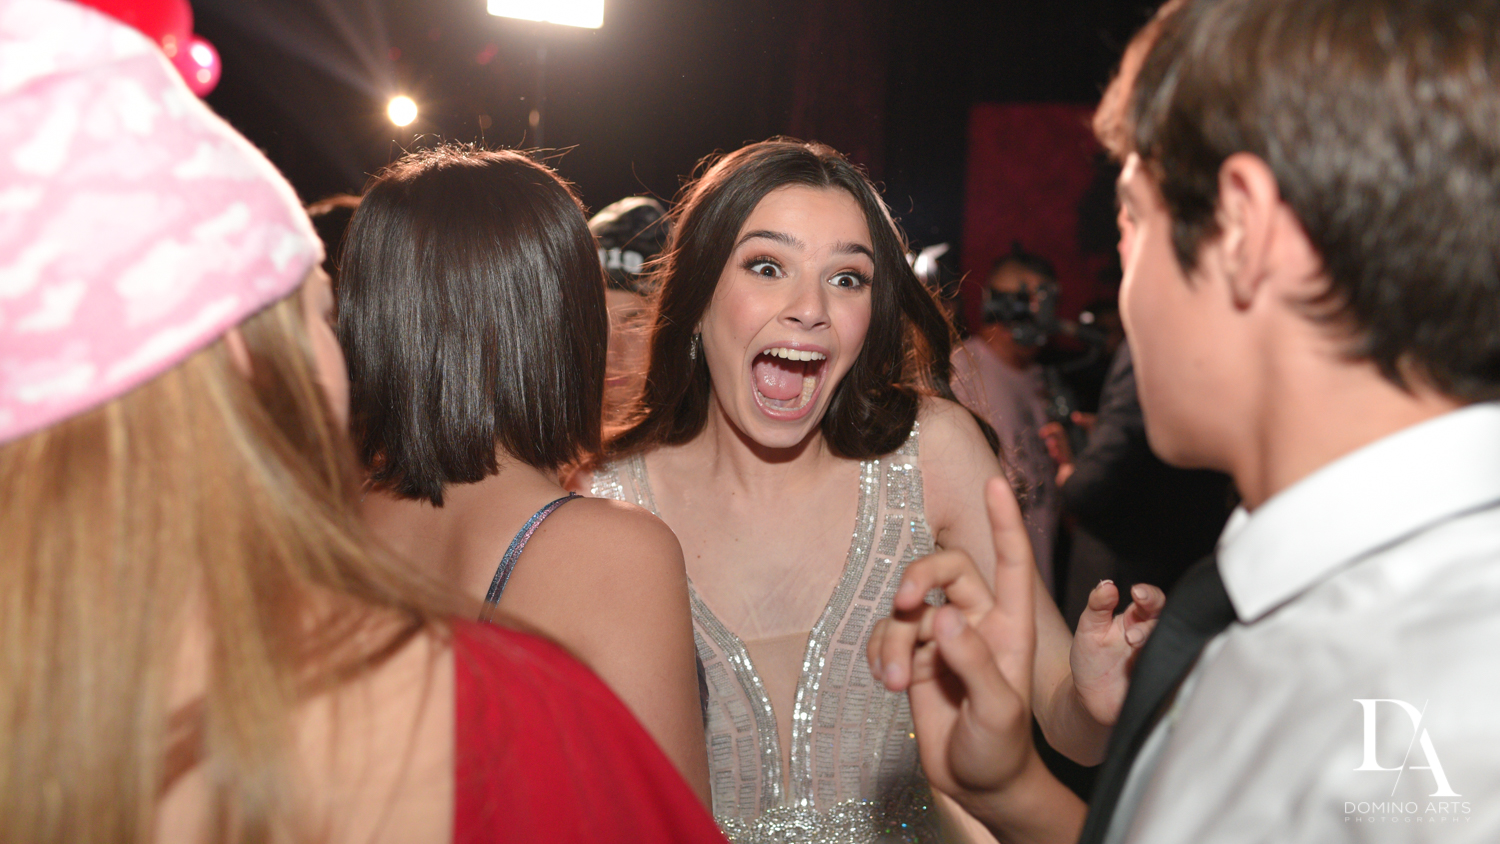 happy girl at Fashion Theme Bat Mitzvah at Gallery of Amazing Things by Domino Arts Photography